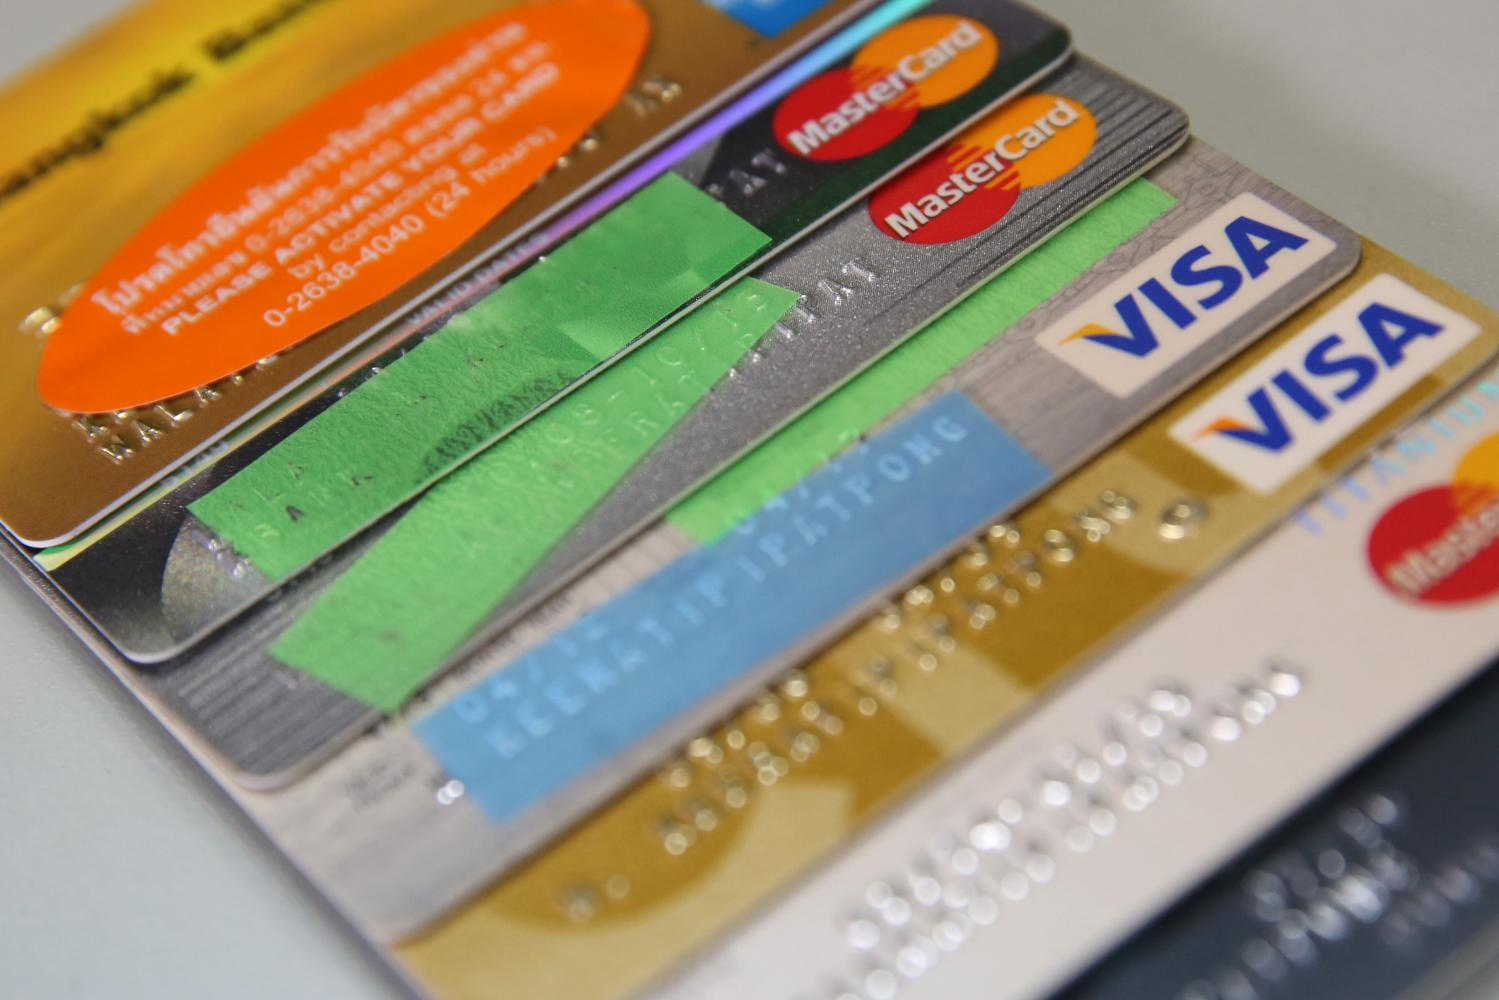 Credit card spending is estimated to shrink by 10% this year. (Photo by Varuth Hirunyatheb)